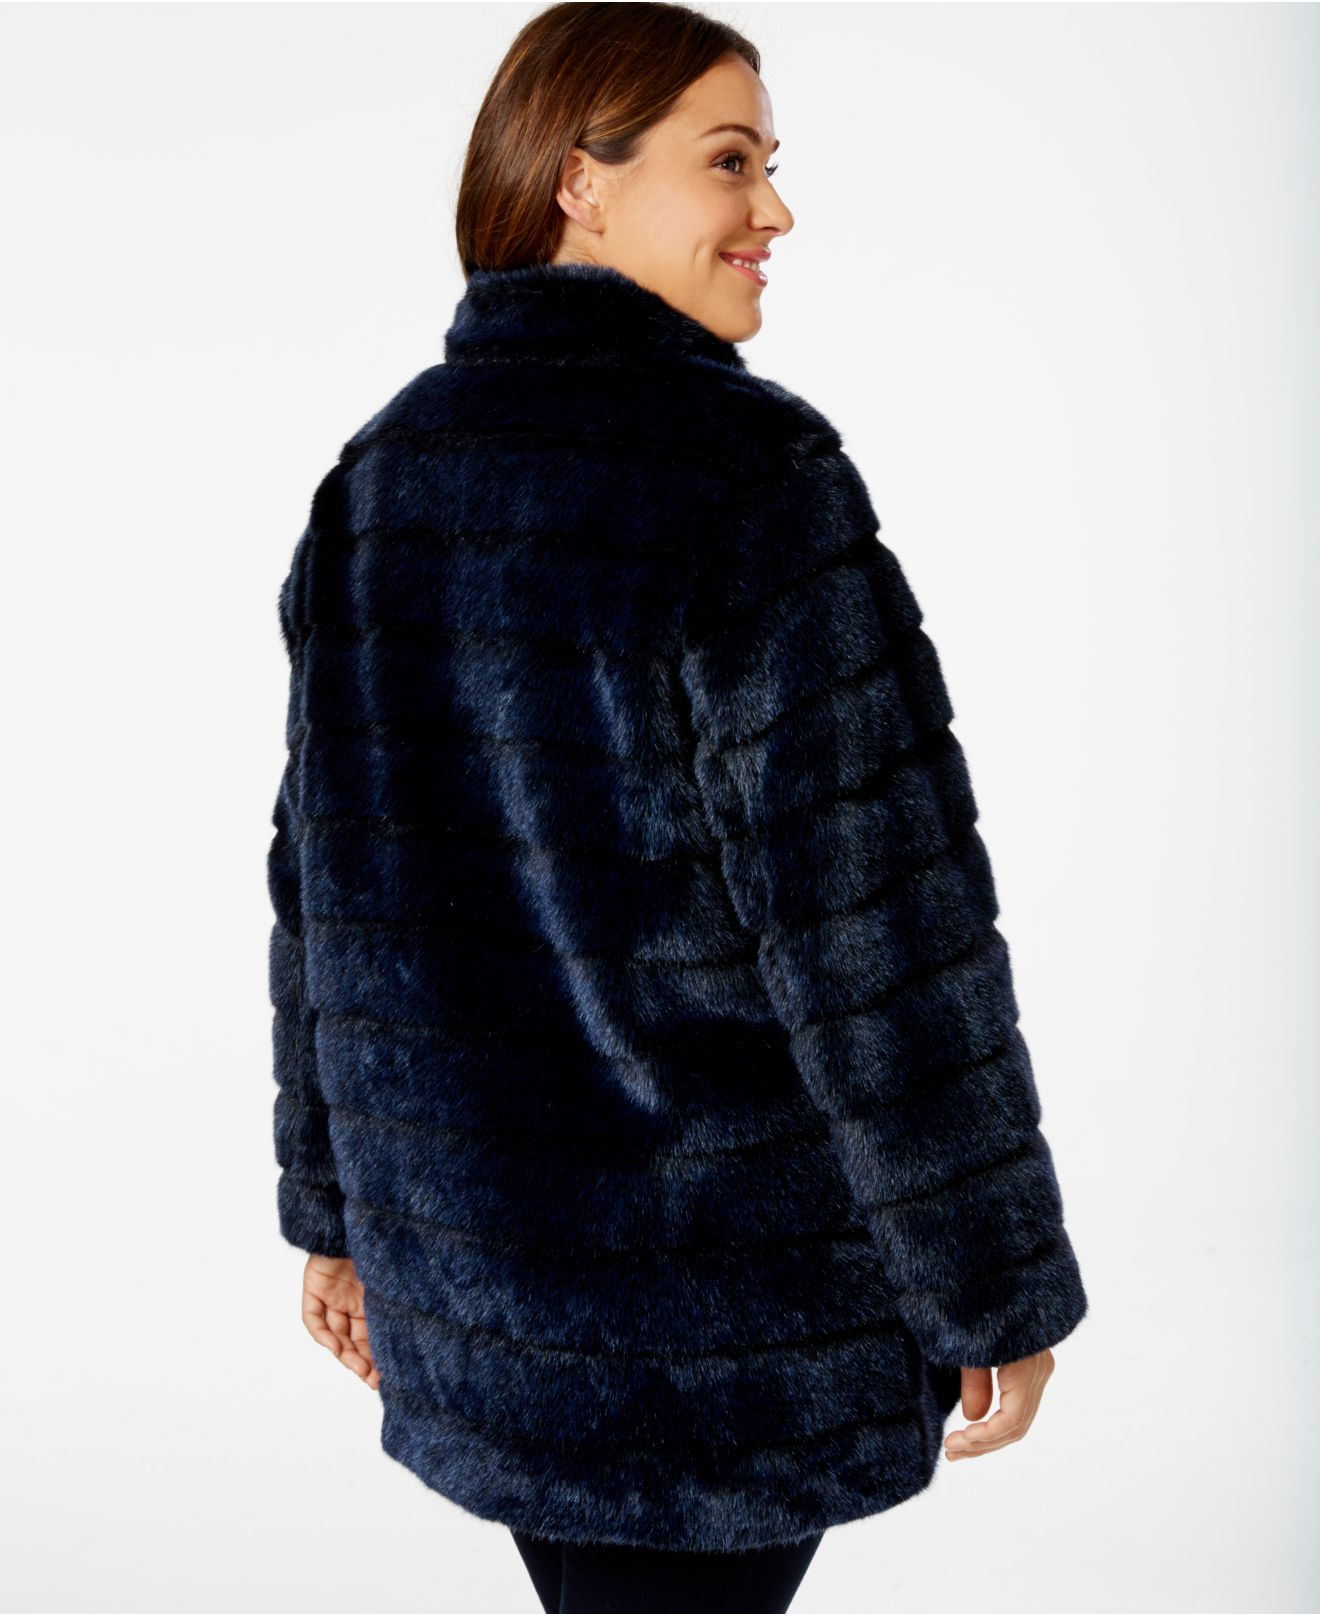 Laundry by shelli segal Plus Size Ribbed Faux-fur Coat in Blue | Lyst